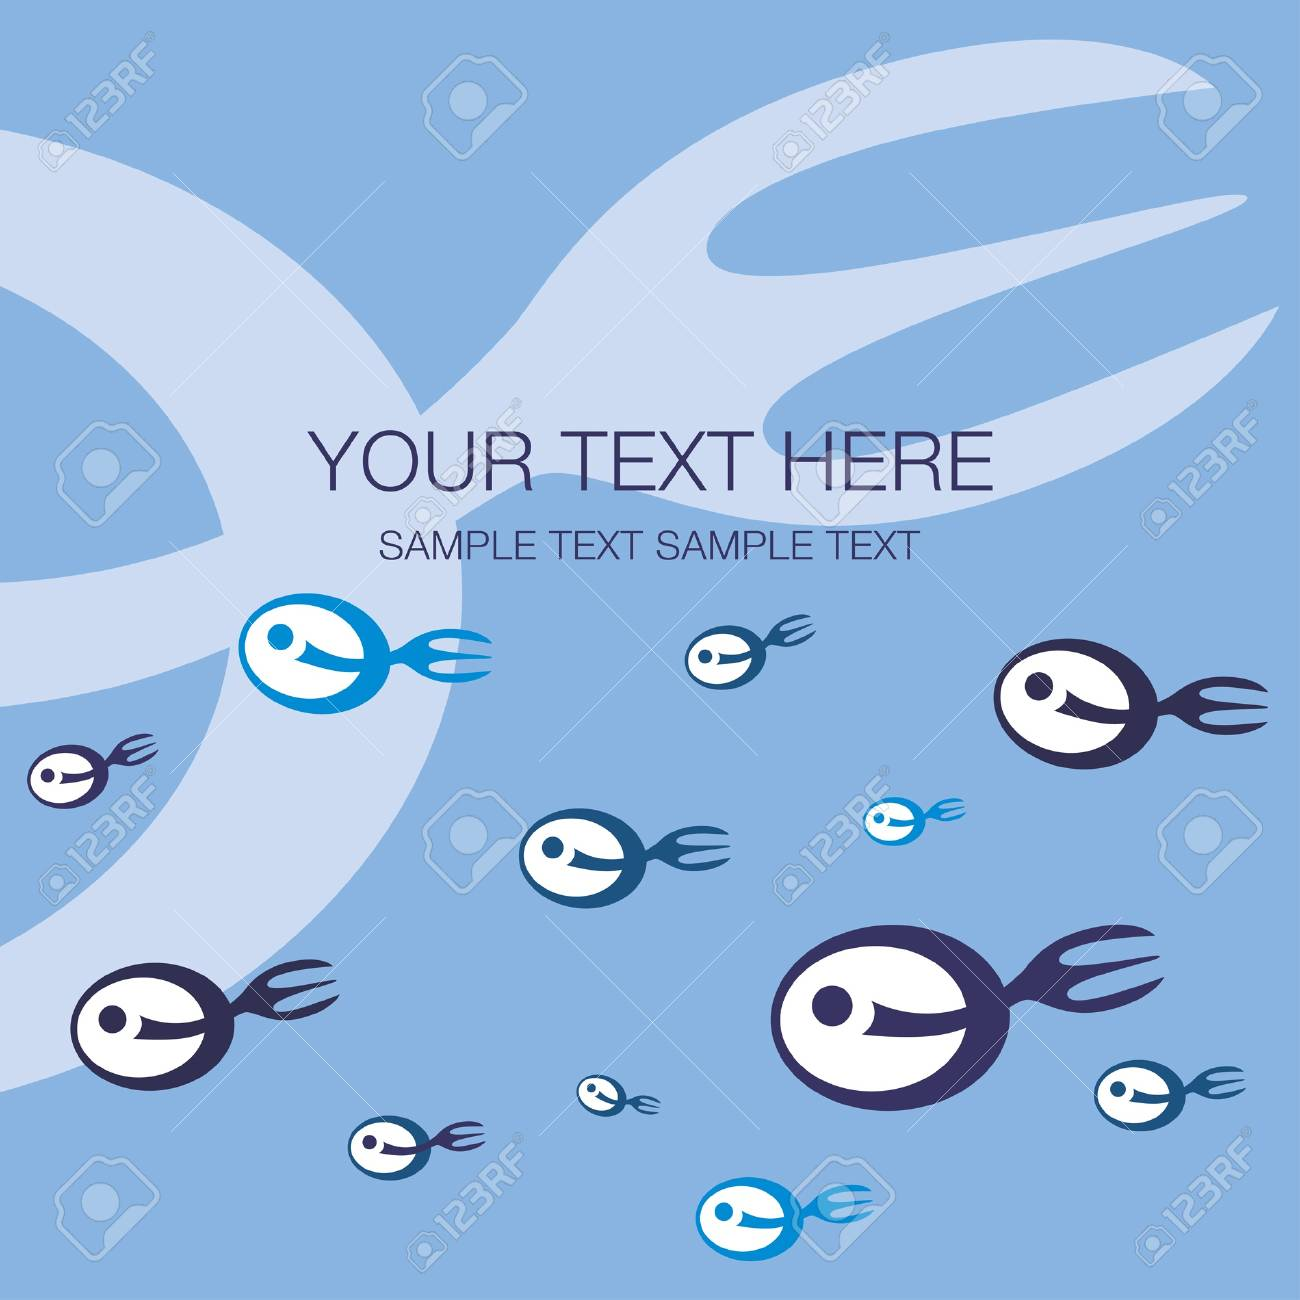 Fork tailed fish design with text space vector. Stock Vector - 10429750